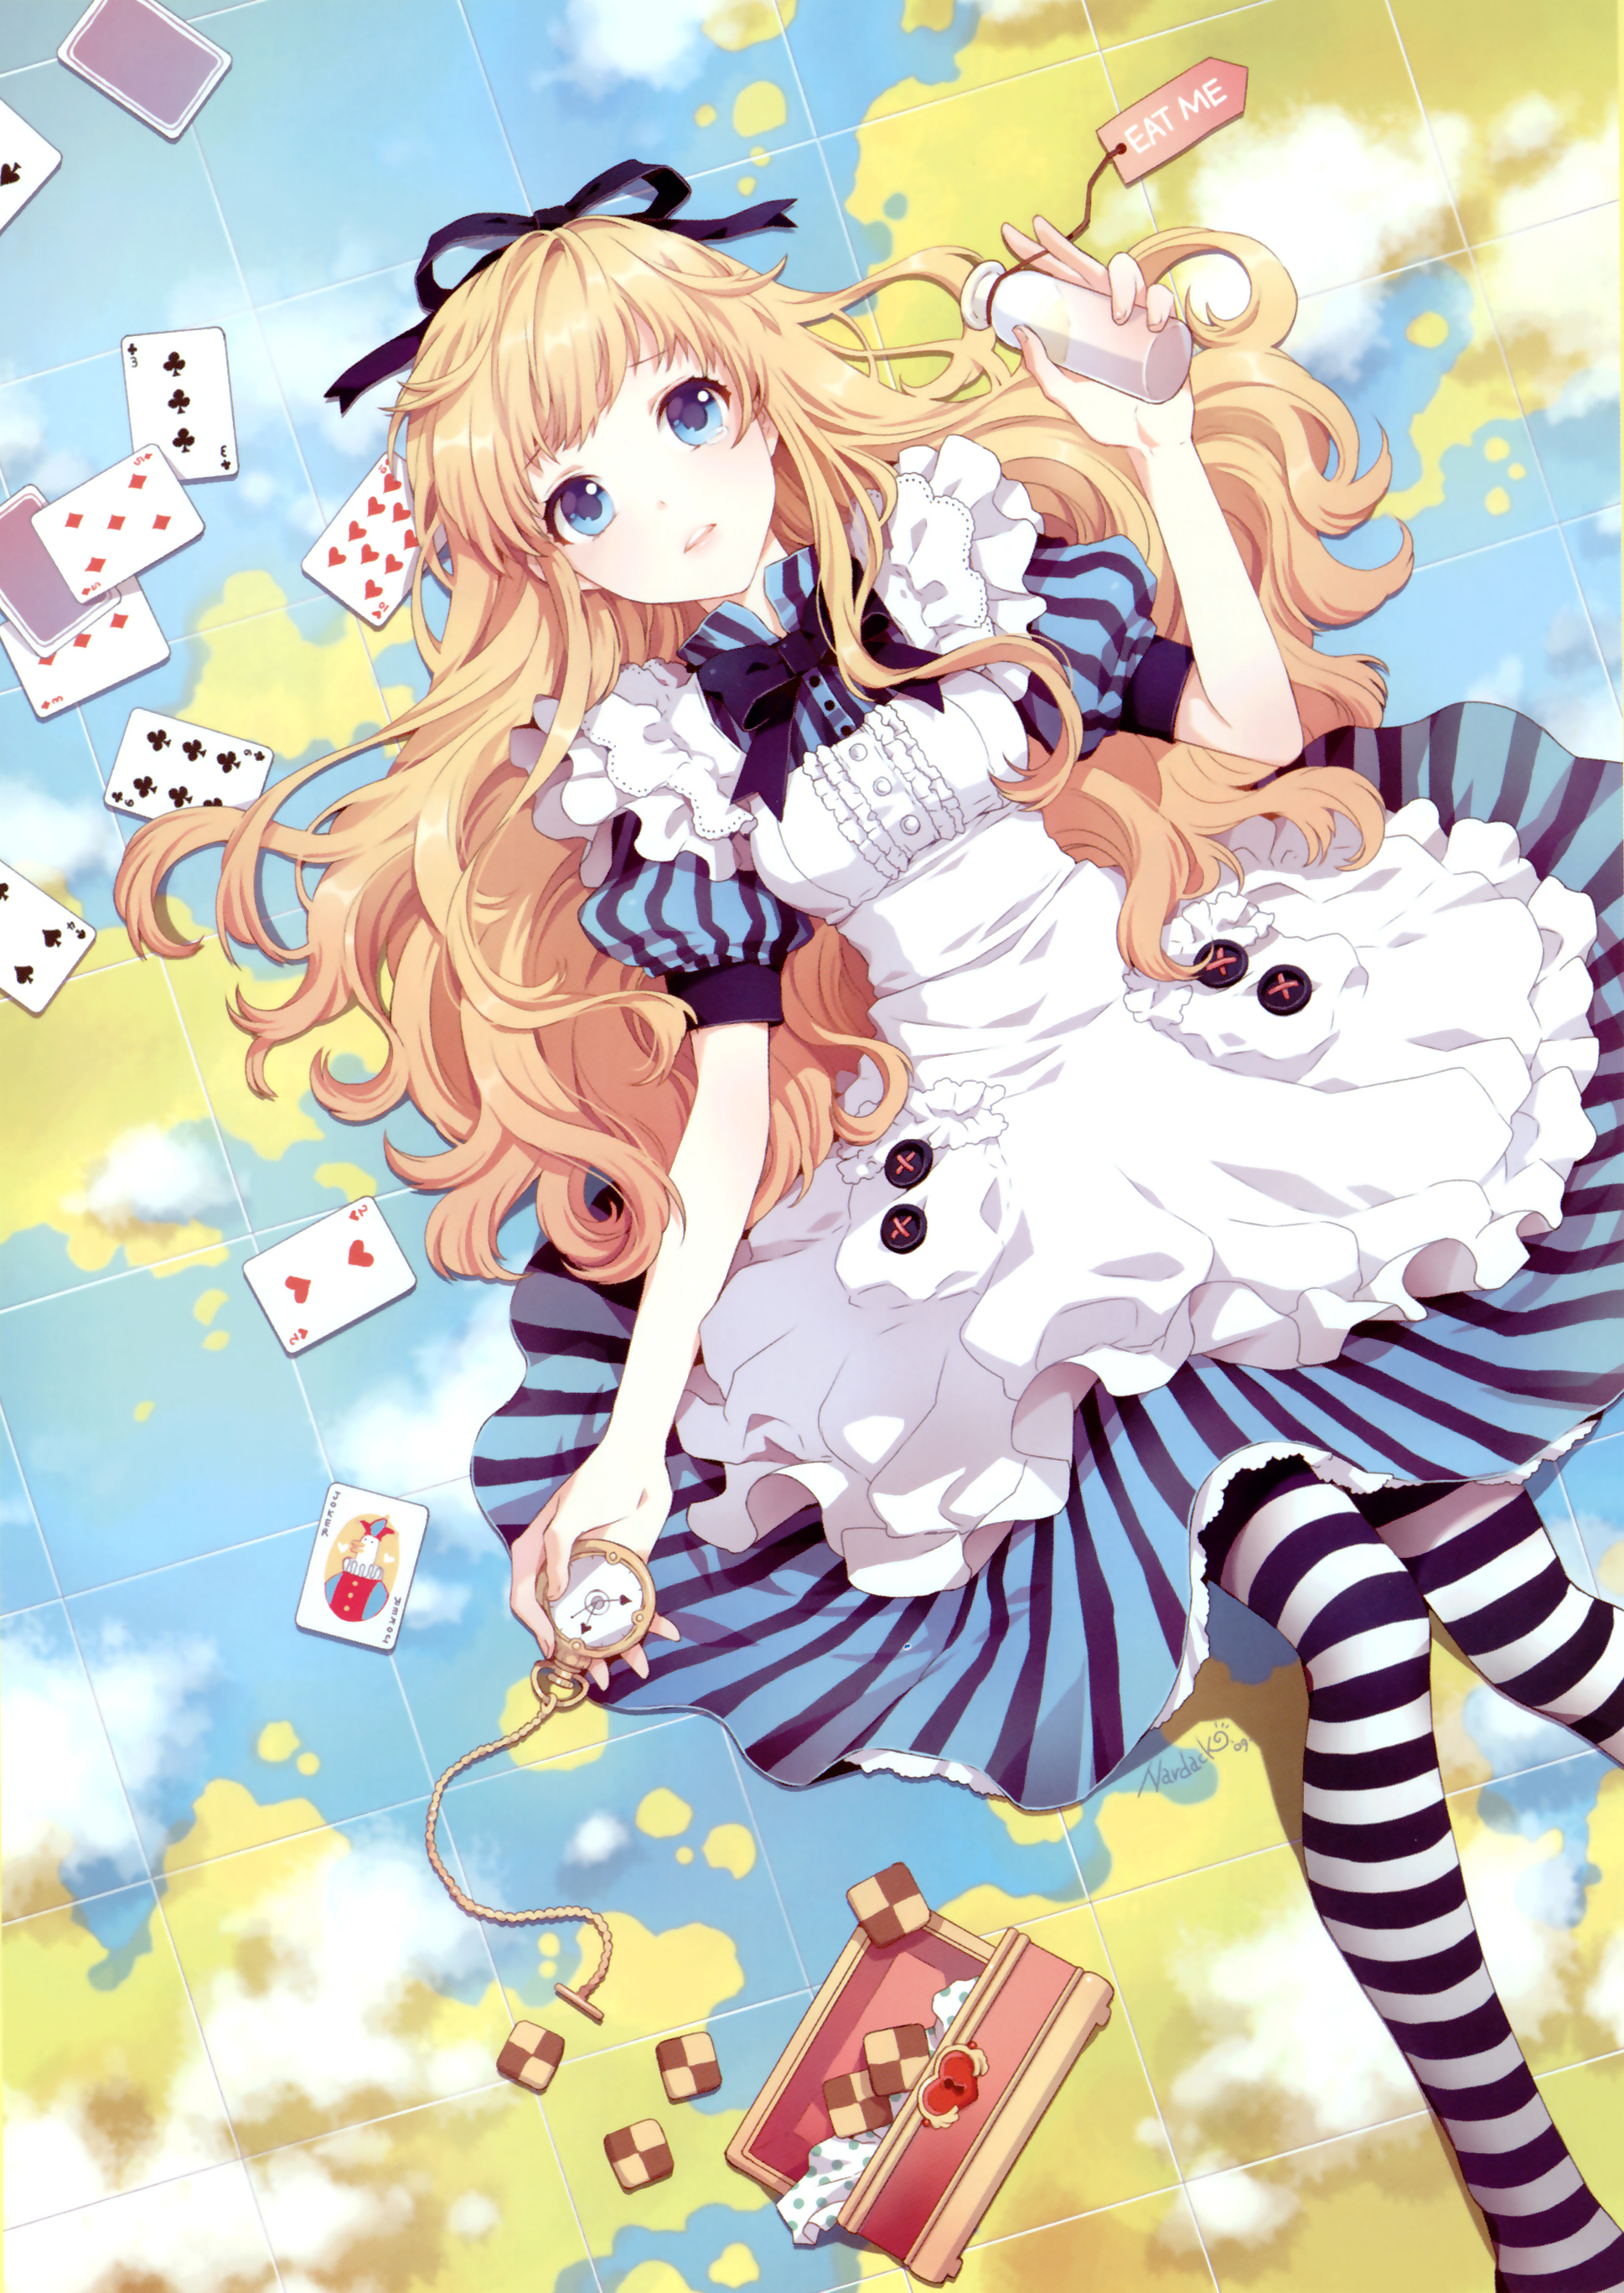 Alice in wonderland short story-1878